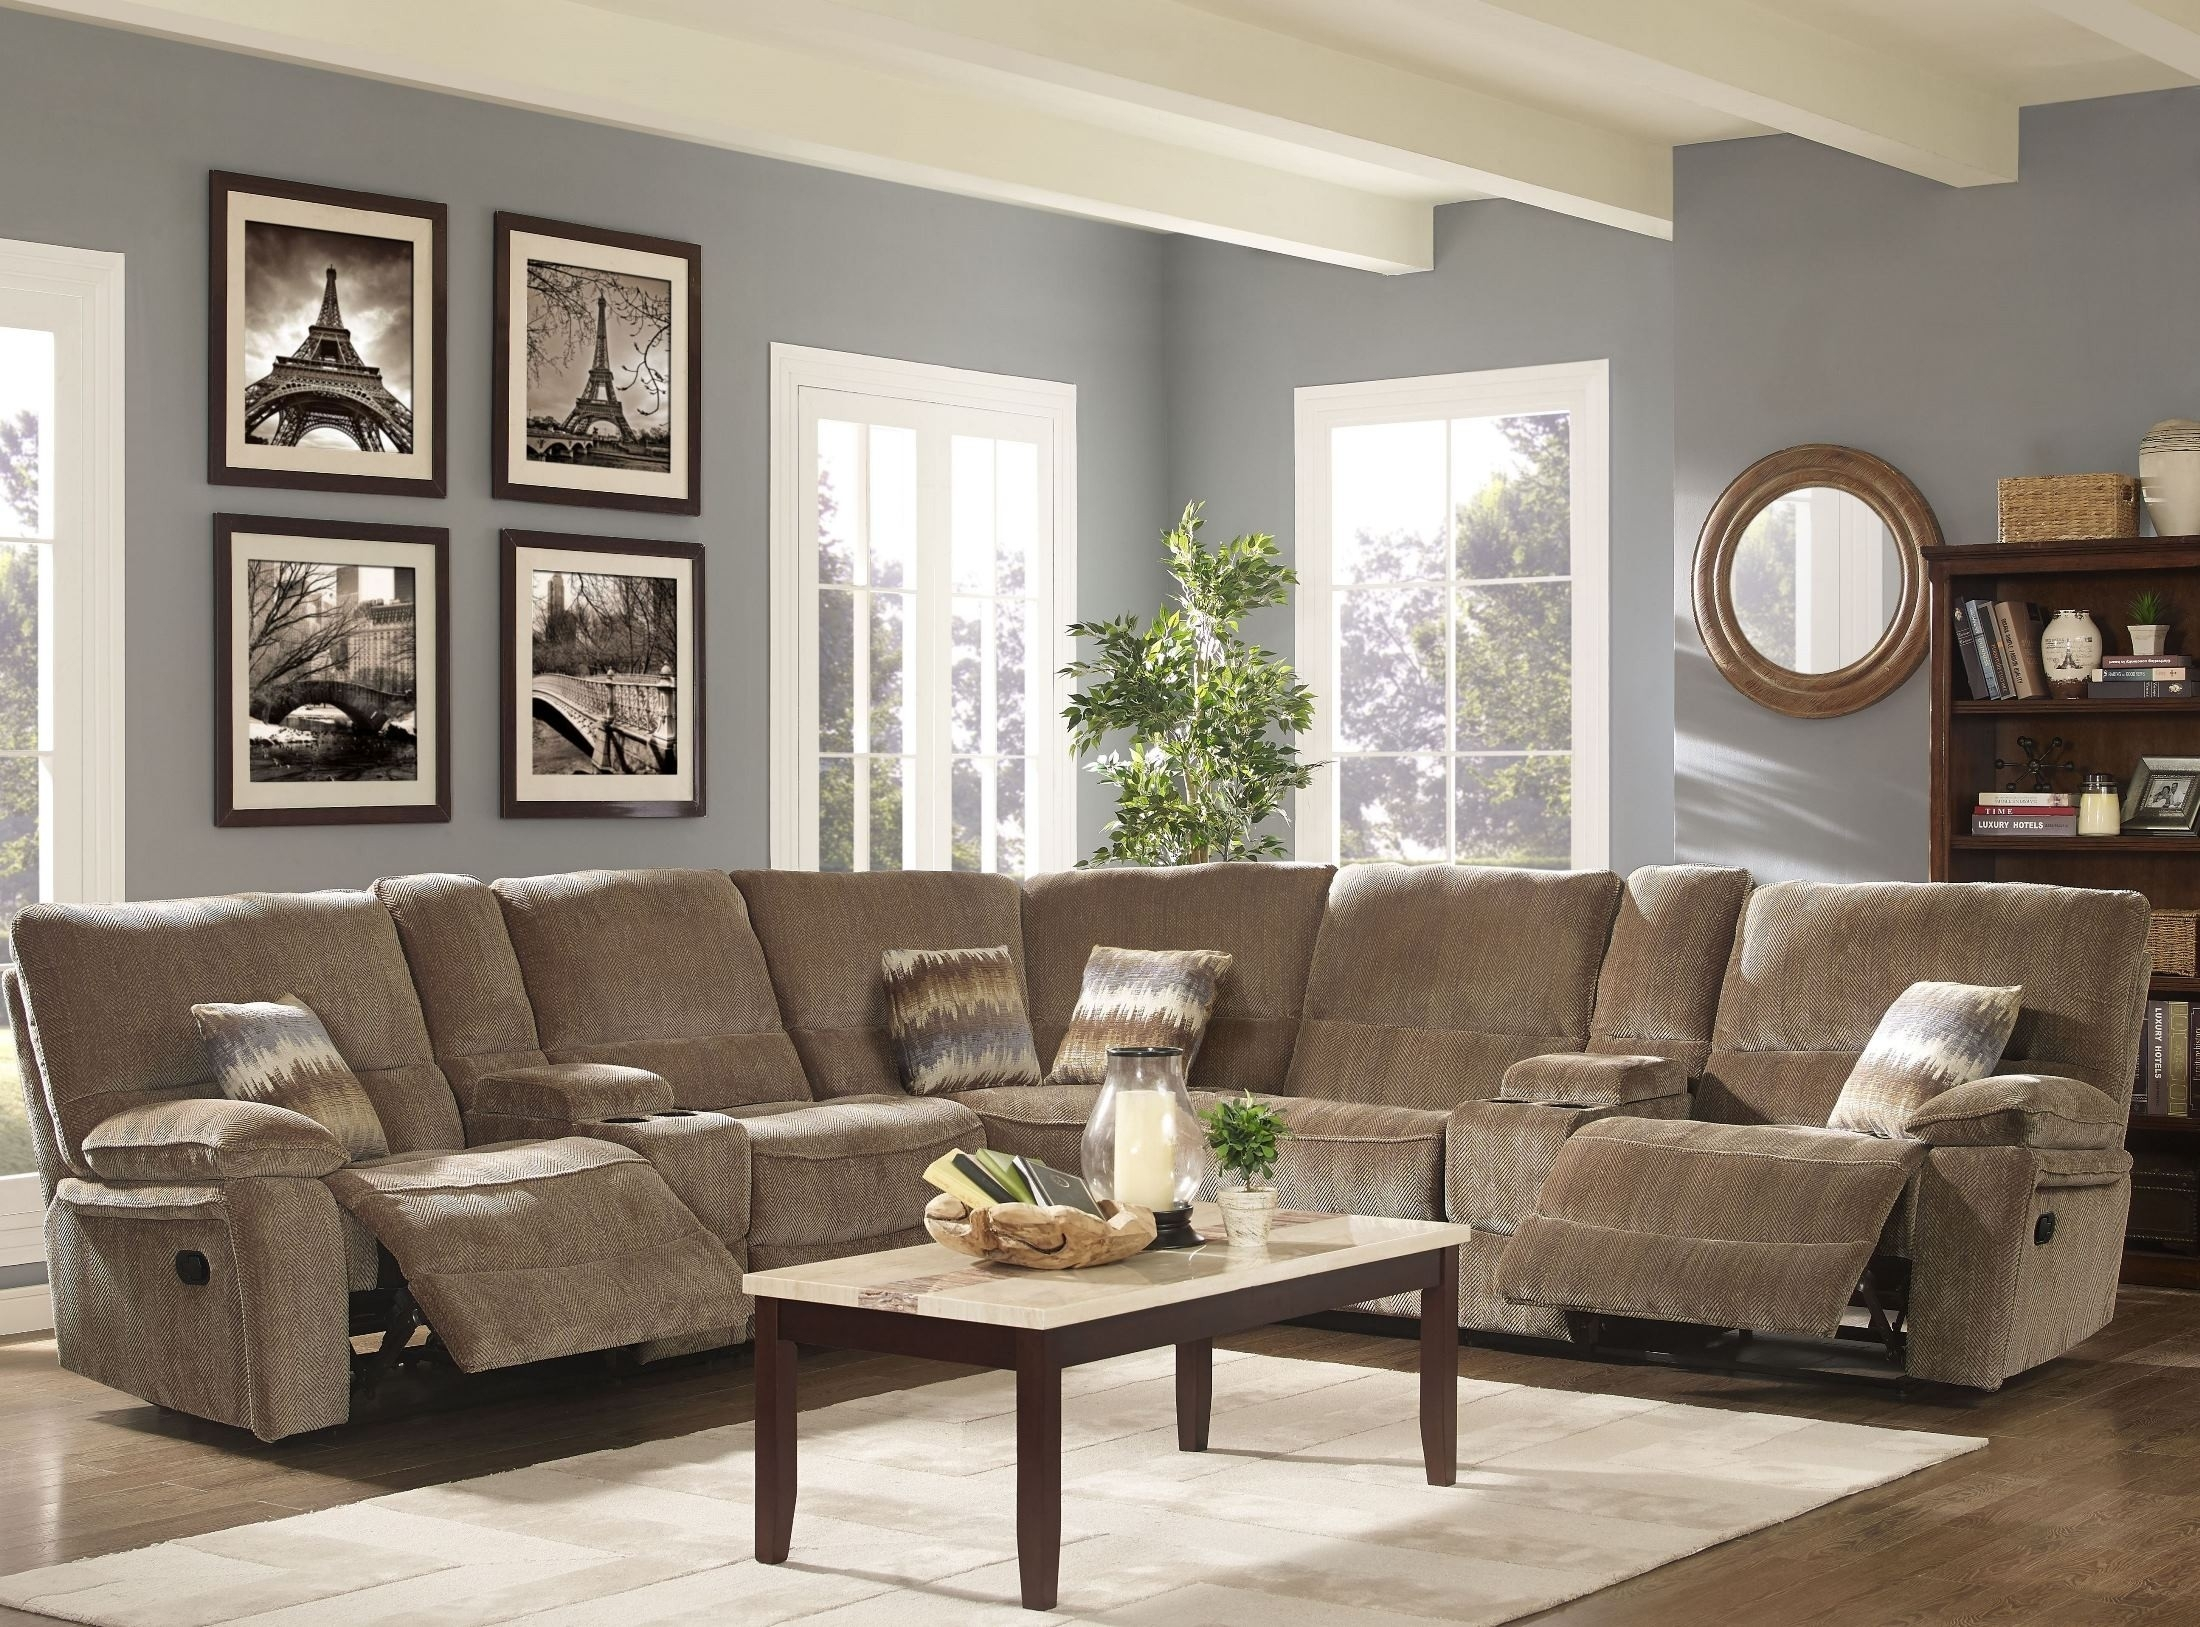 Ranger Bravo Sandalwood Power Reclining Sectional From New Classic Intended For Turdur 2 Piece Sectionals With Raf Loveseat (Image 25 of 25)